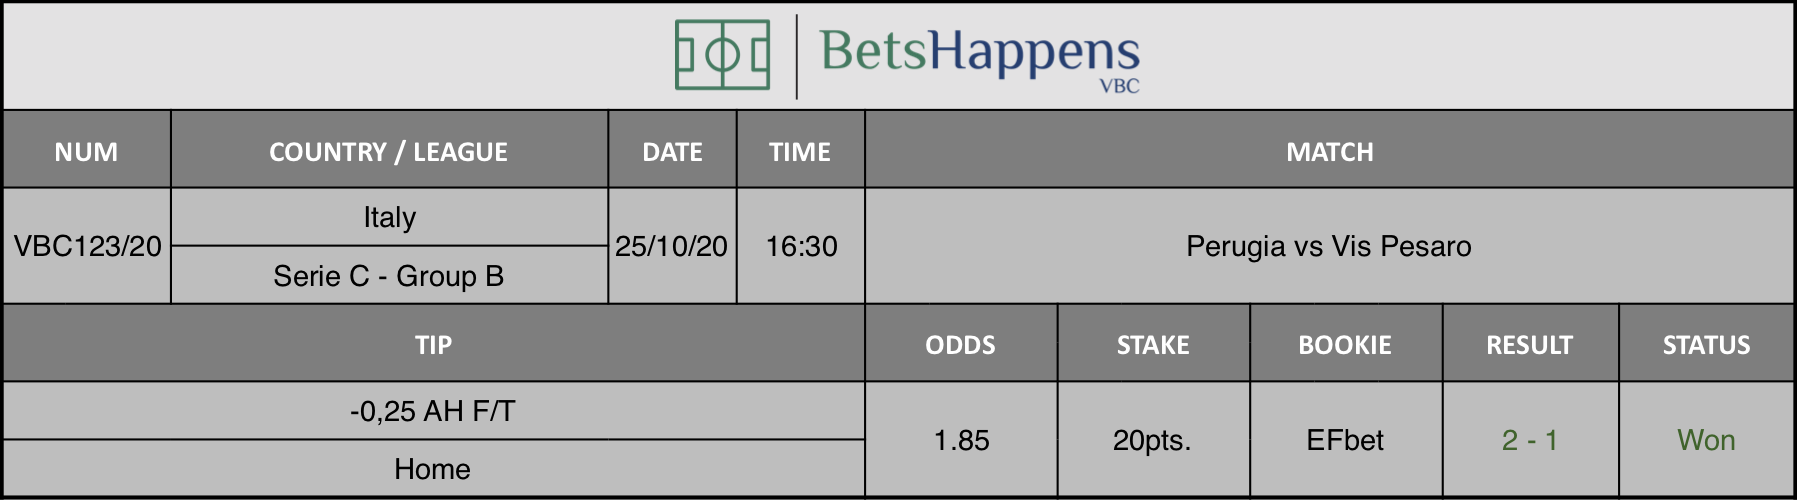 Results of our advice for the Perugia vs Vis Pesaro match in which -0.25 AH F / T Home is recommended.